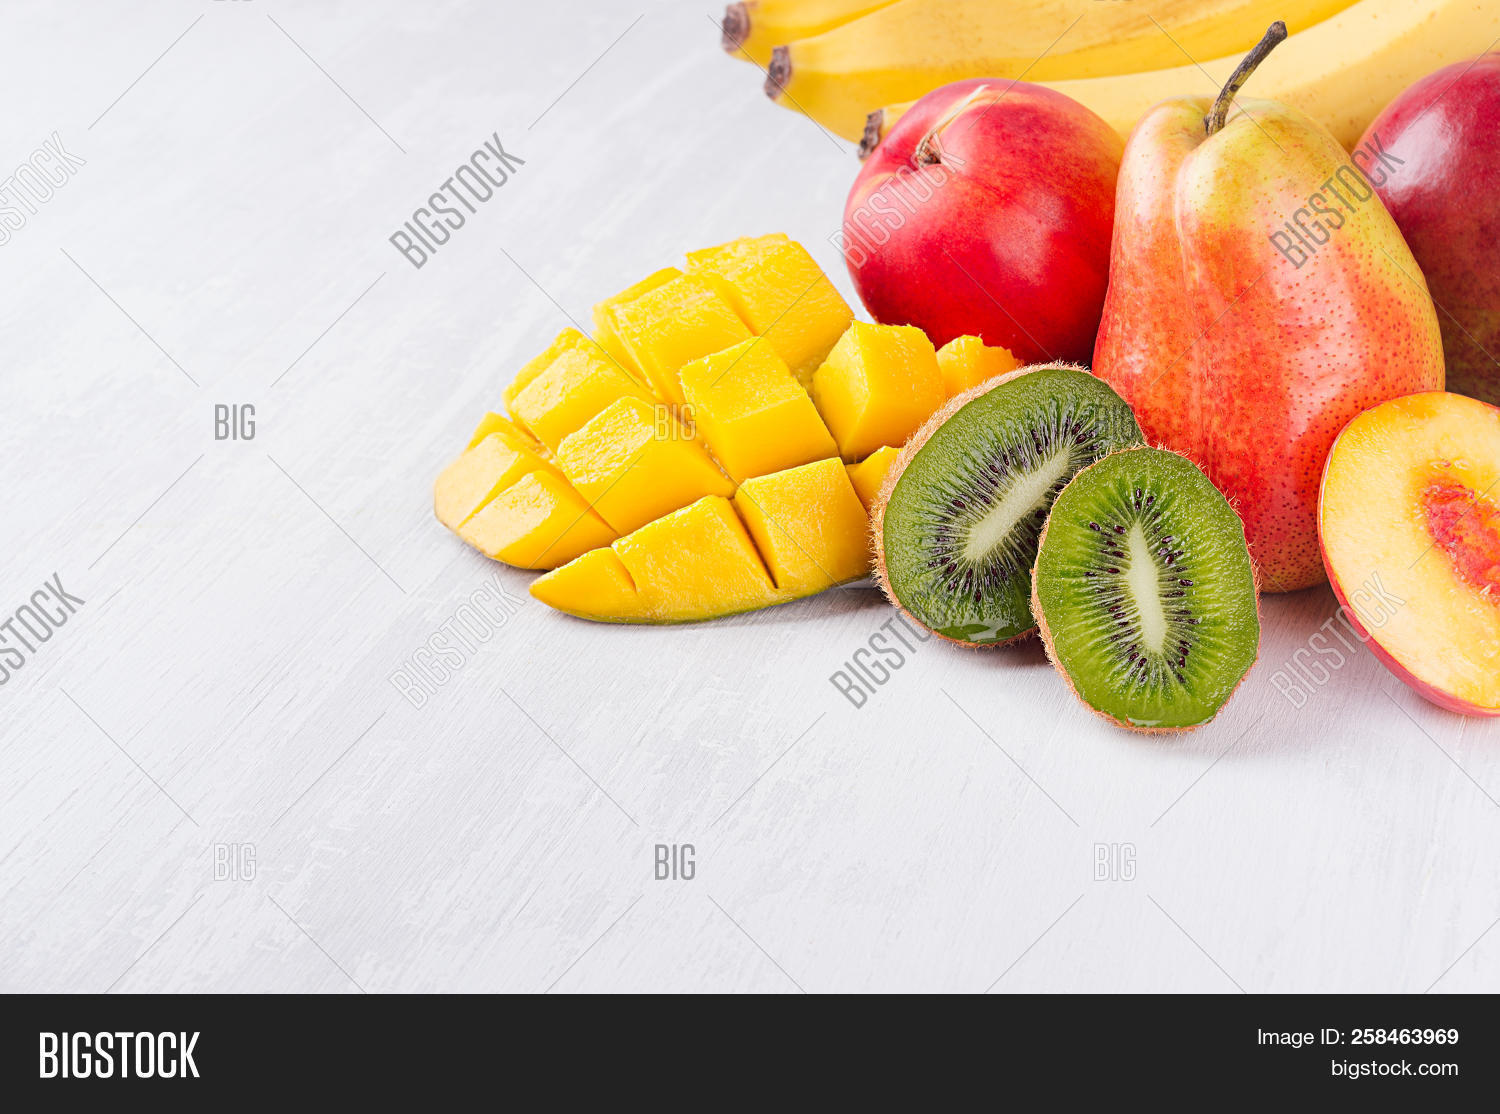 Colorful Fruits Mix Image Photo Free Trial Bigstock